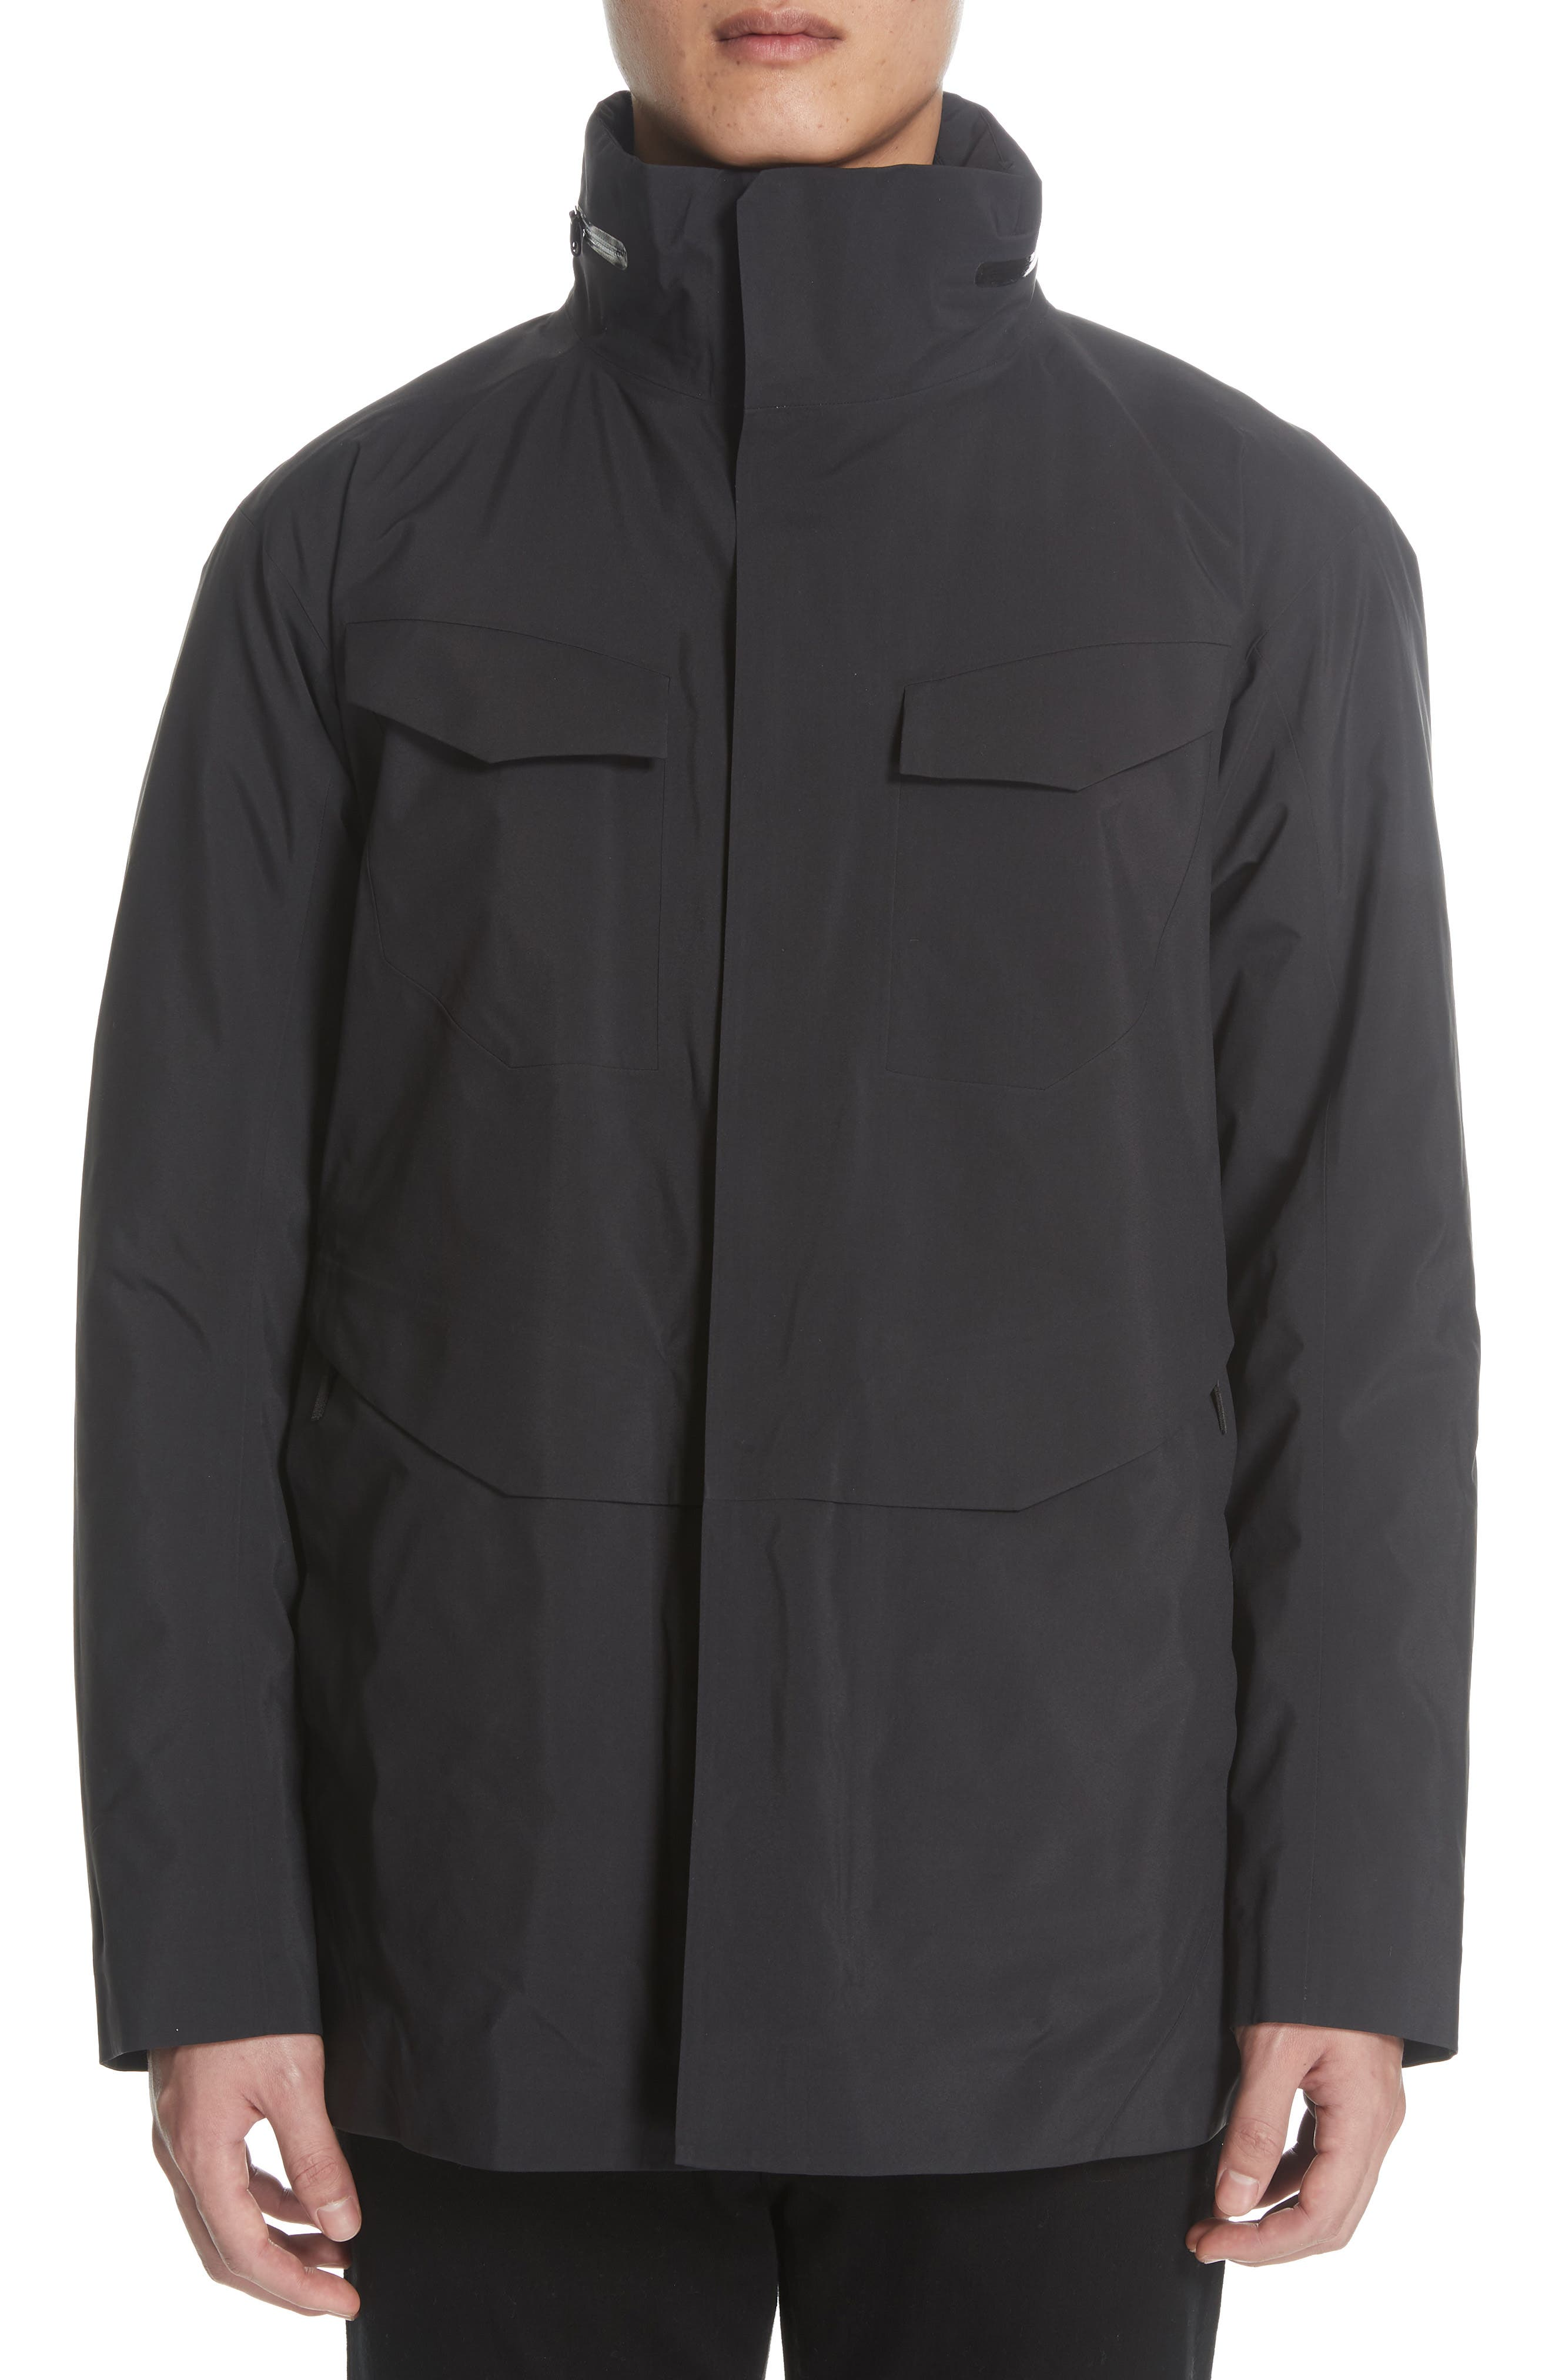 Gore-Tex<sup>®</sup> Pro Waterproof/Windproof Insulated Field Jacket,                             Alternate thumbnail 2, color,                             BLACK